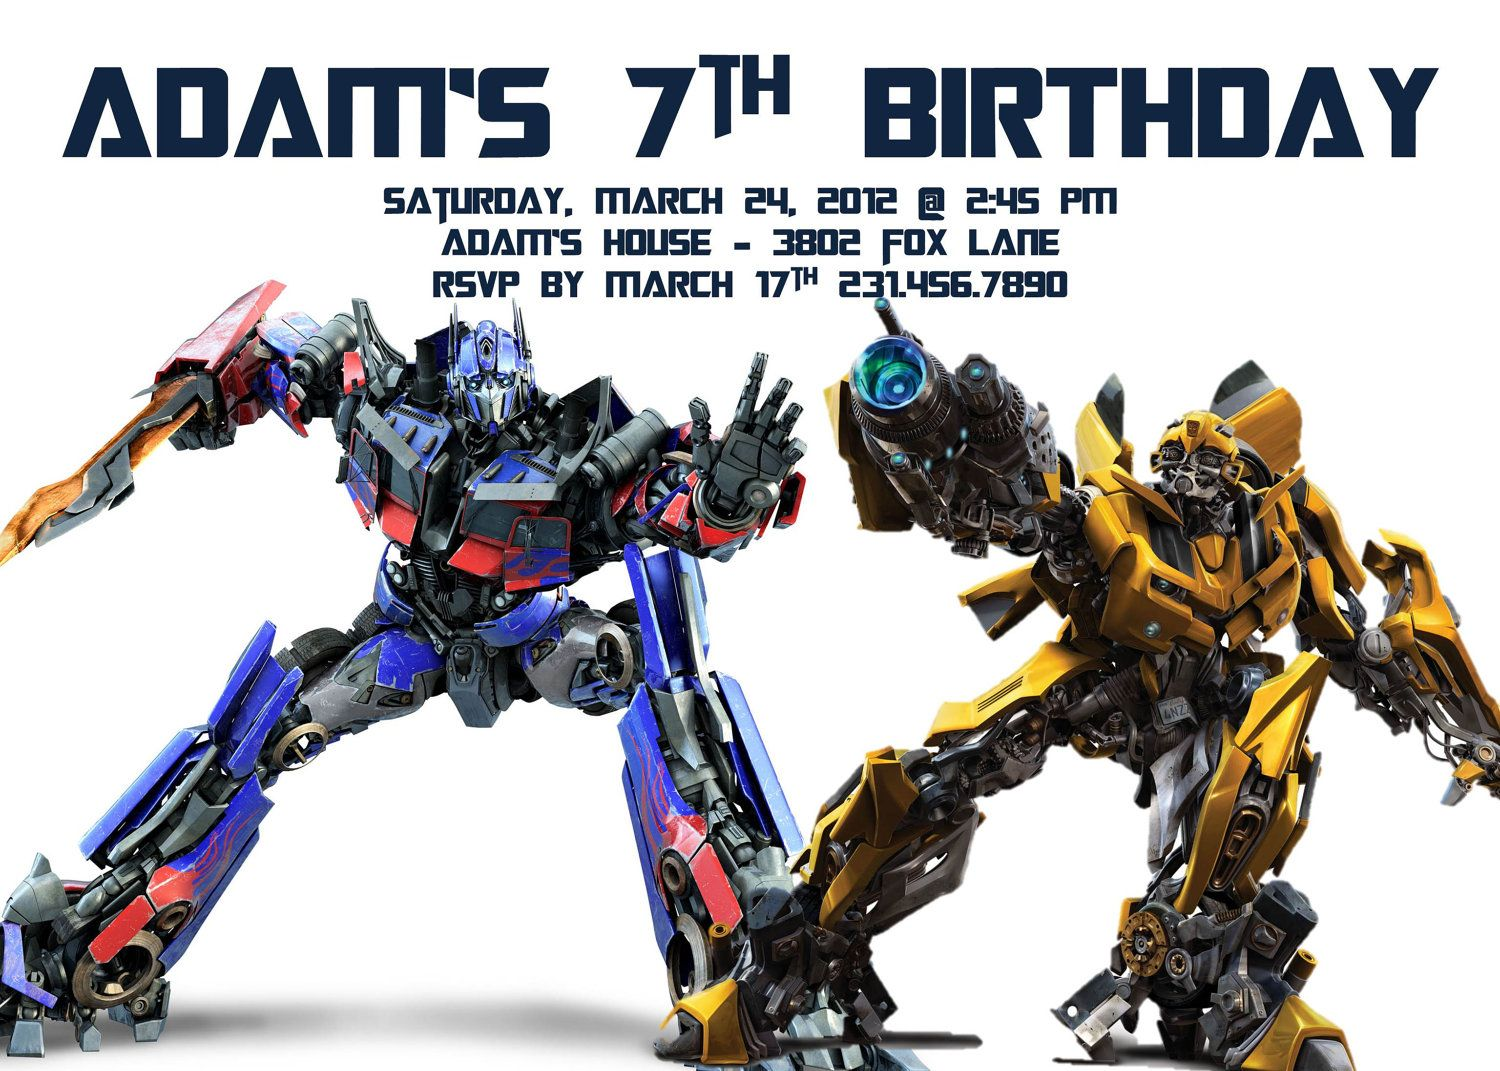 Transformers Birthday Invitation Template Party Alistairs 5th